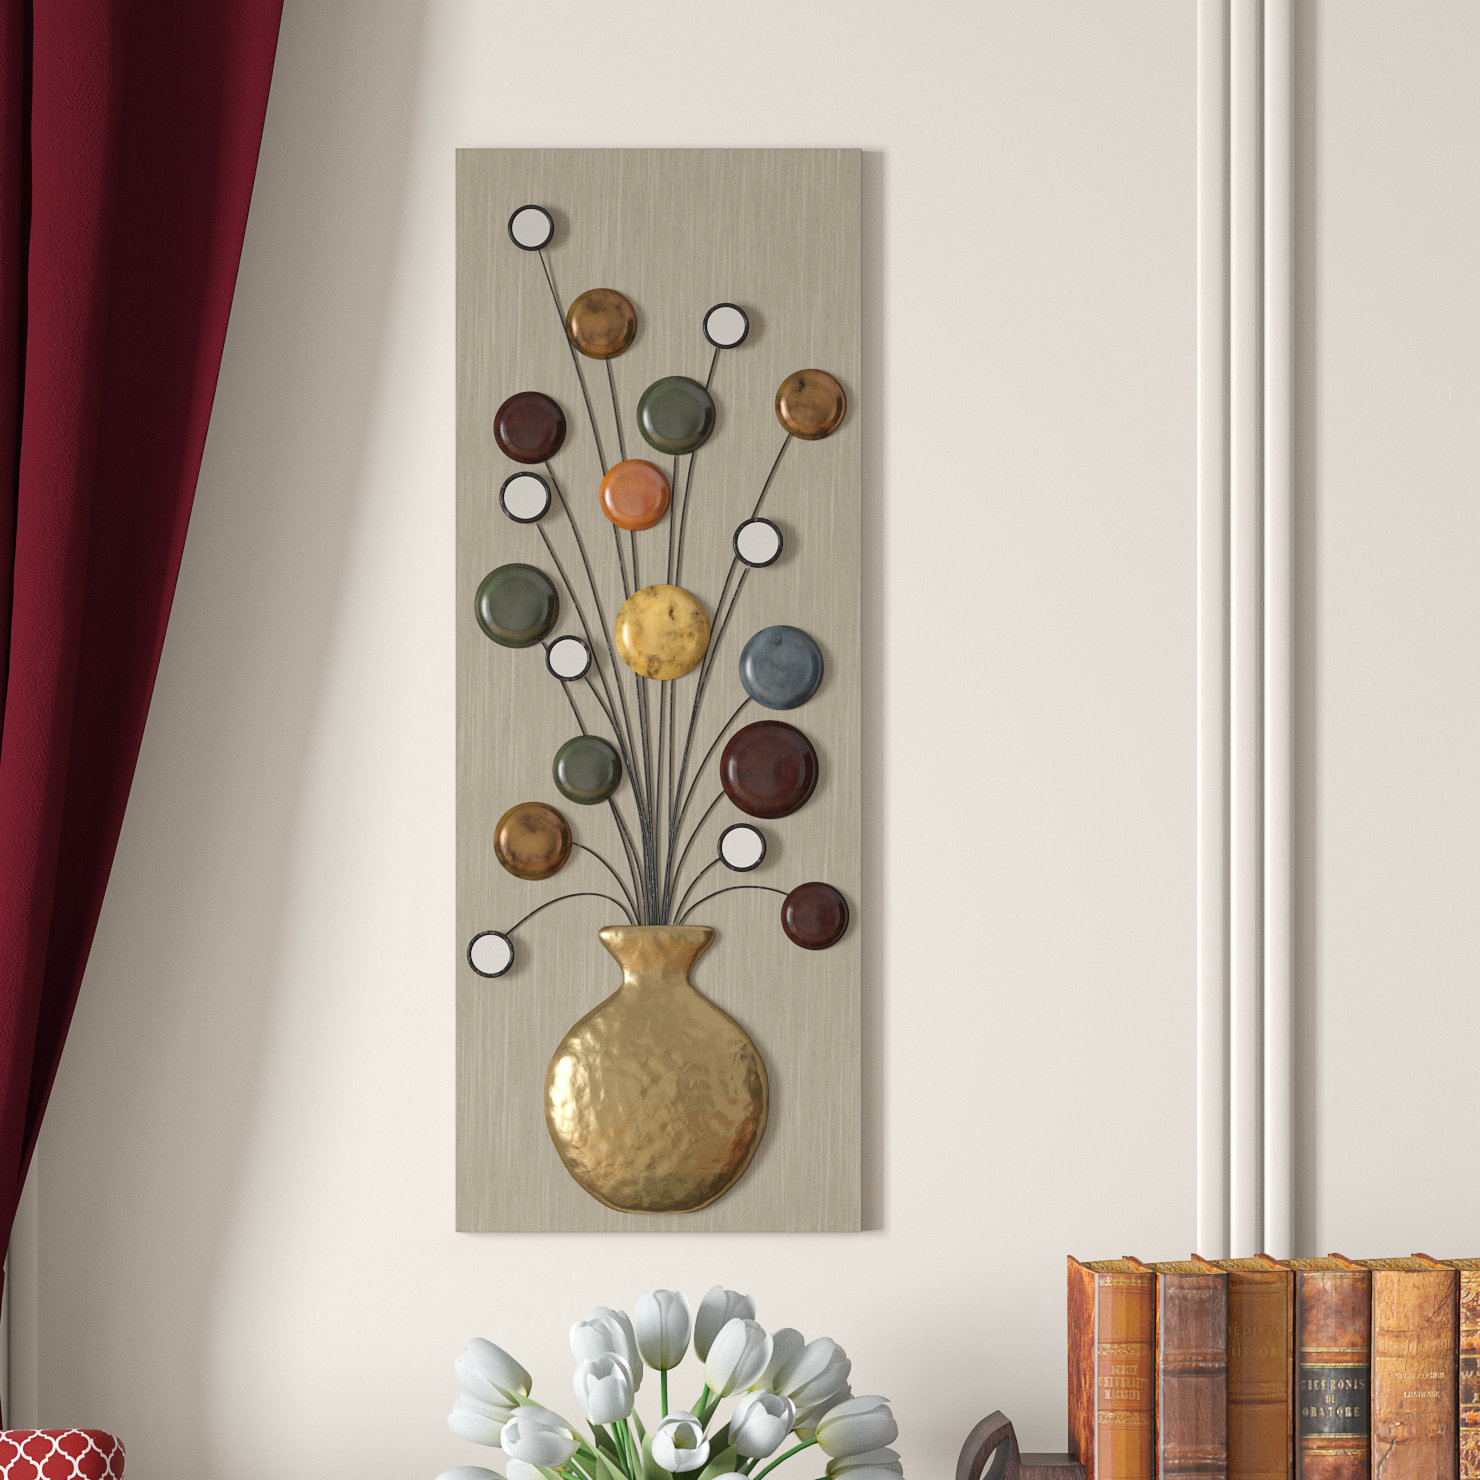 Charlton Home Faux Vase And Flower Metal Wall Décor In Wall Decor By Charlton Home (View 20 of 30)